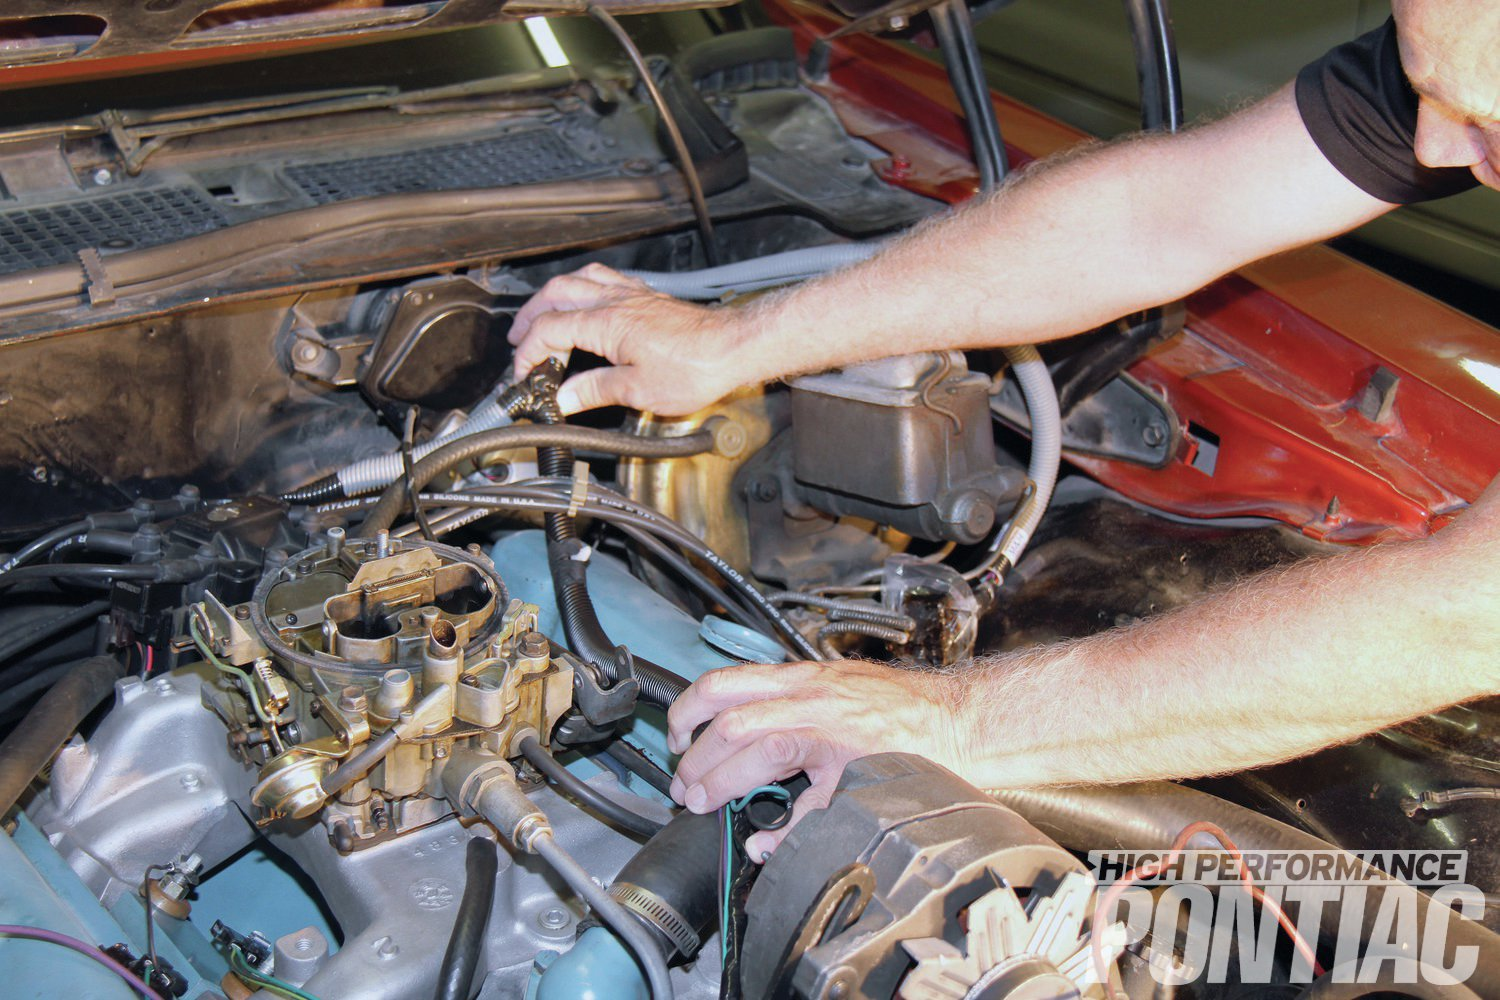 15. The reproduction engine harness fits our Trans Am's 455 just like the original. We set it into place and routed the wires accordingly. Everything is reconnected in the exact same fashion as it was removed.